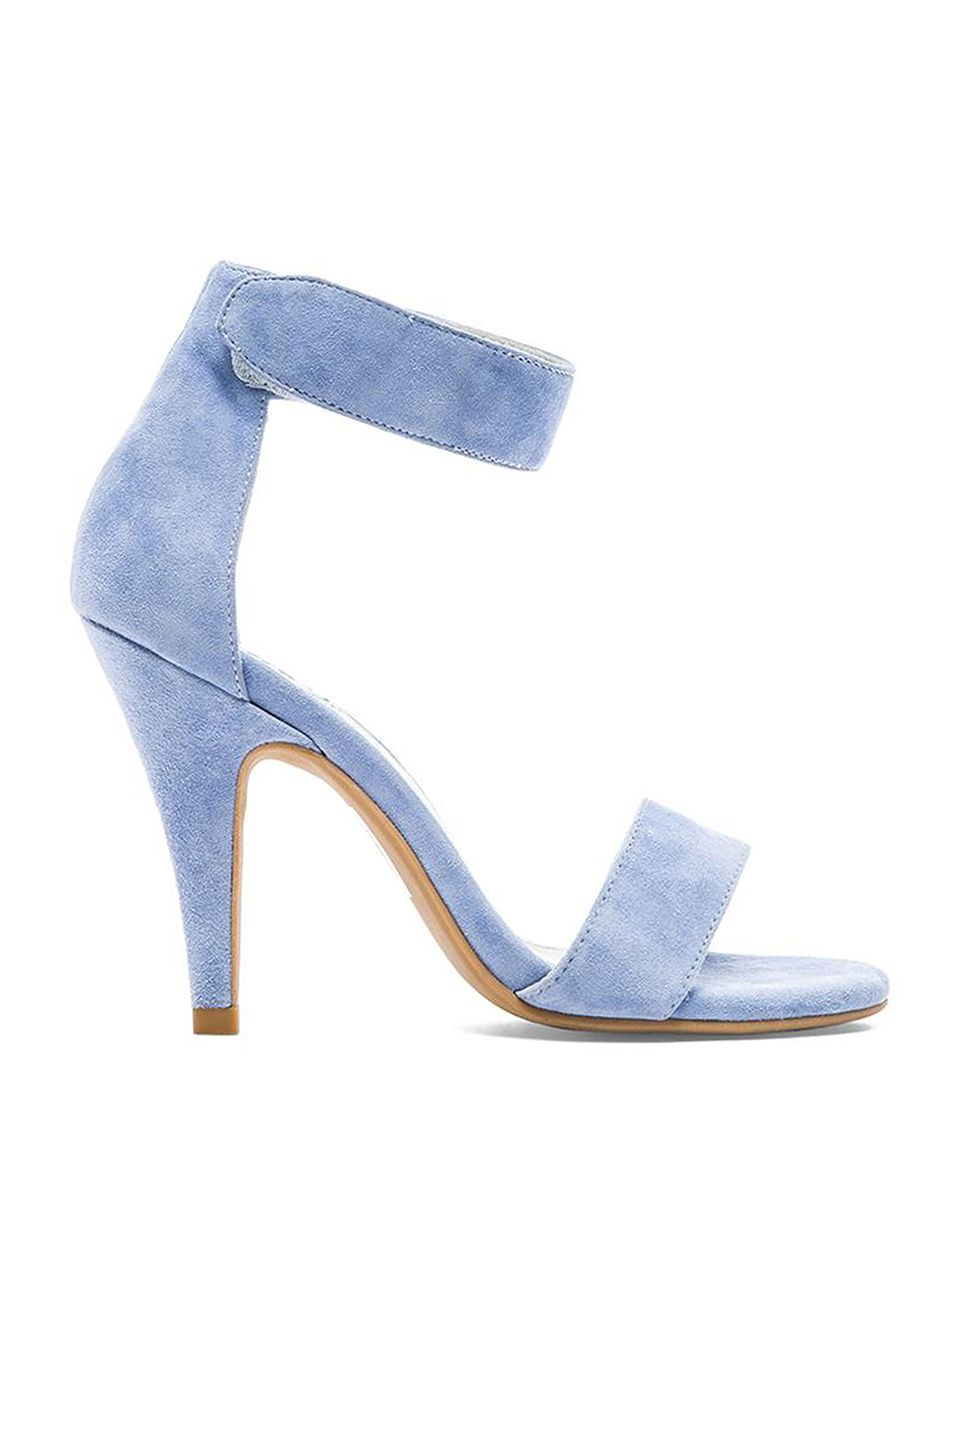 Jeffrey Campbell Hough Heels in Pale Blue Suede | REVOLVE | Shoes ...